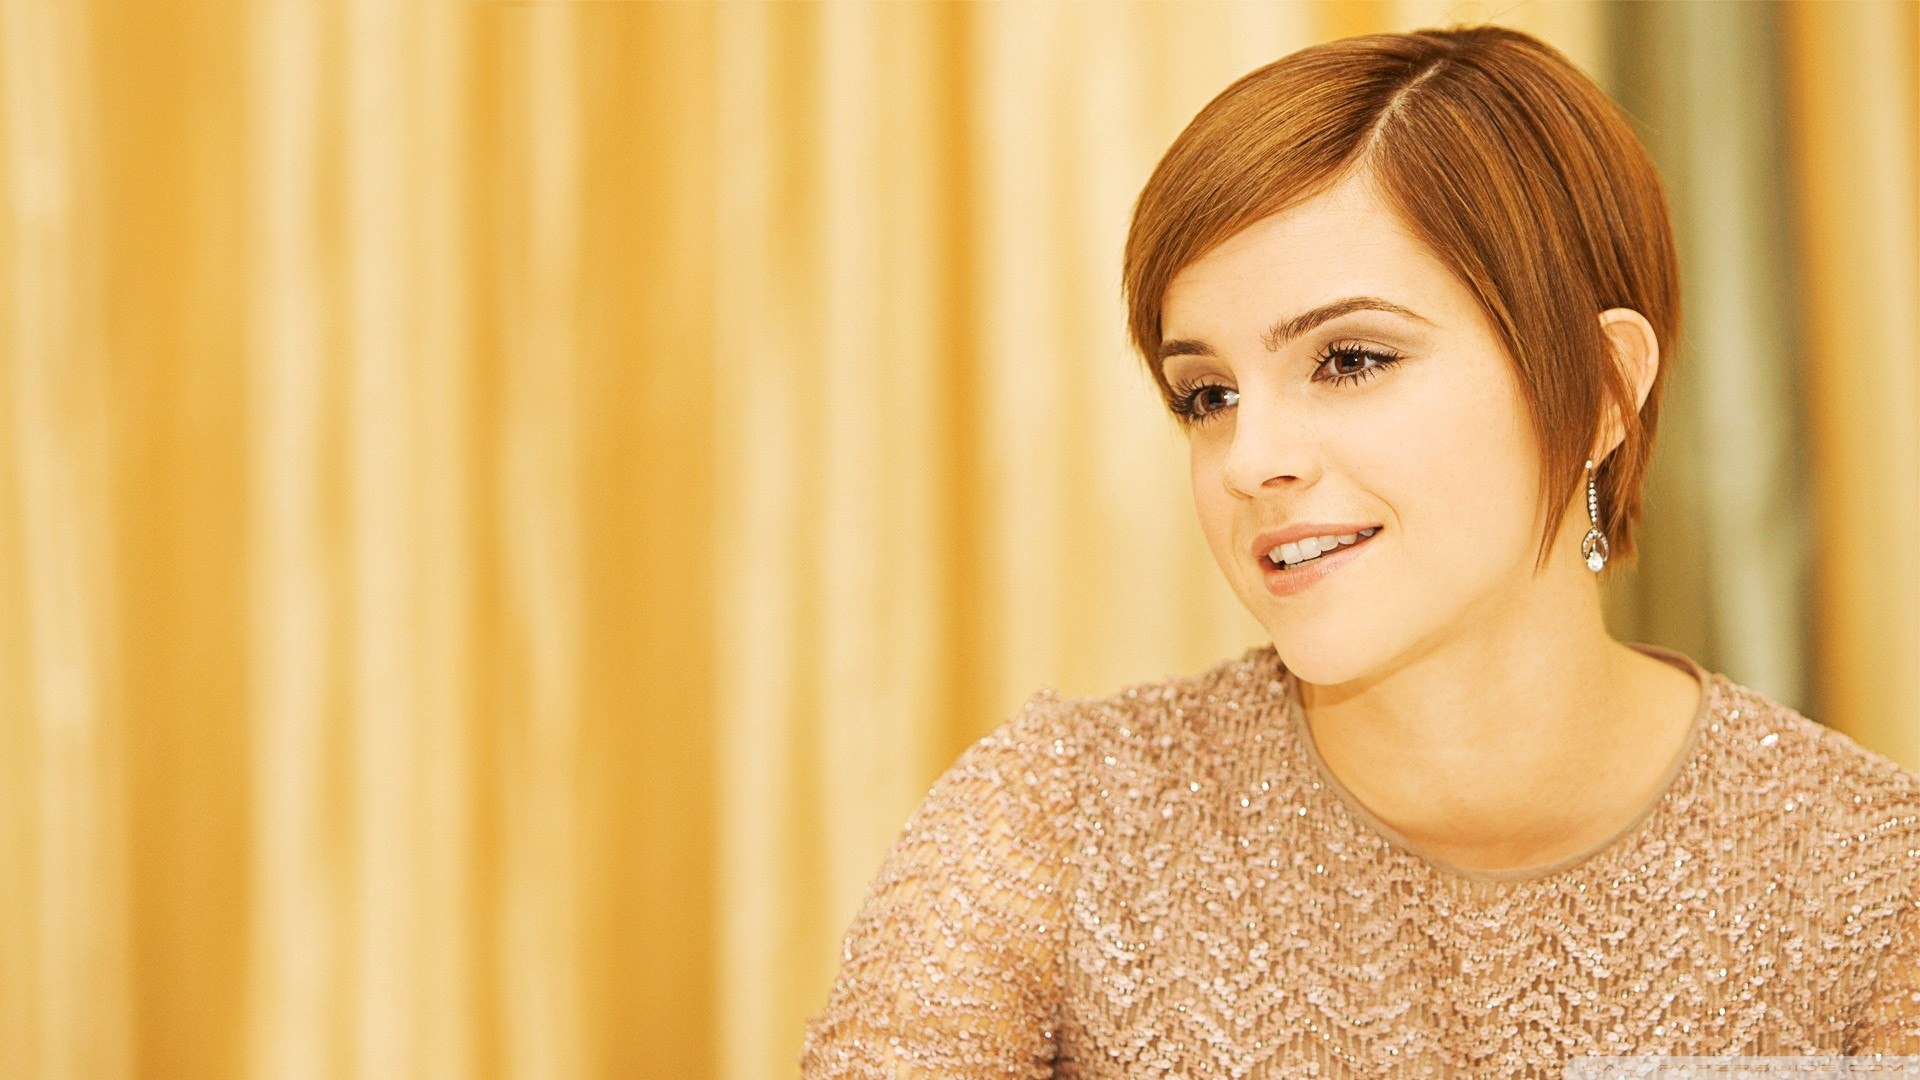 Emma Watson Iphone Wallpaper HD Wallpapermonkey Wallpapers P Entertainment Tagzeo And Backgrounds